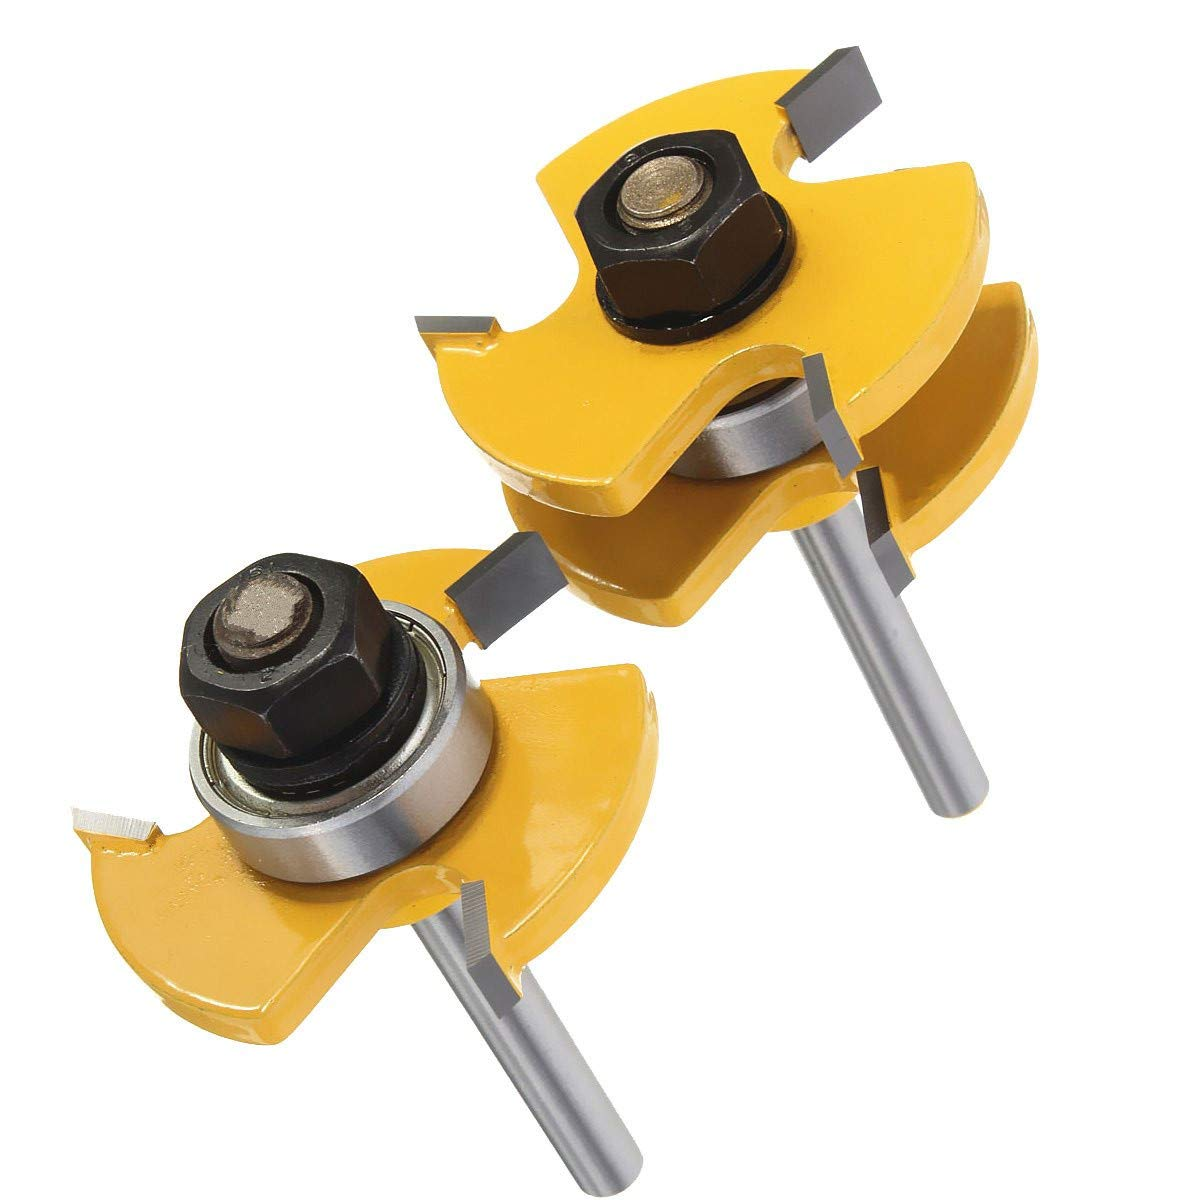 Nxtop Set of 2 Pieces 1/4-Inch Shank Matched Tongue and Groove Router Bit Set